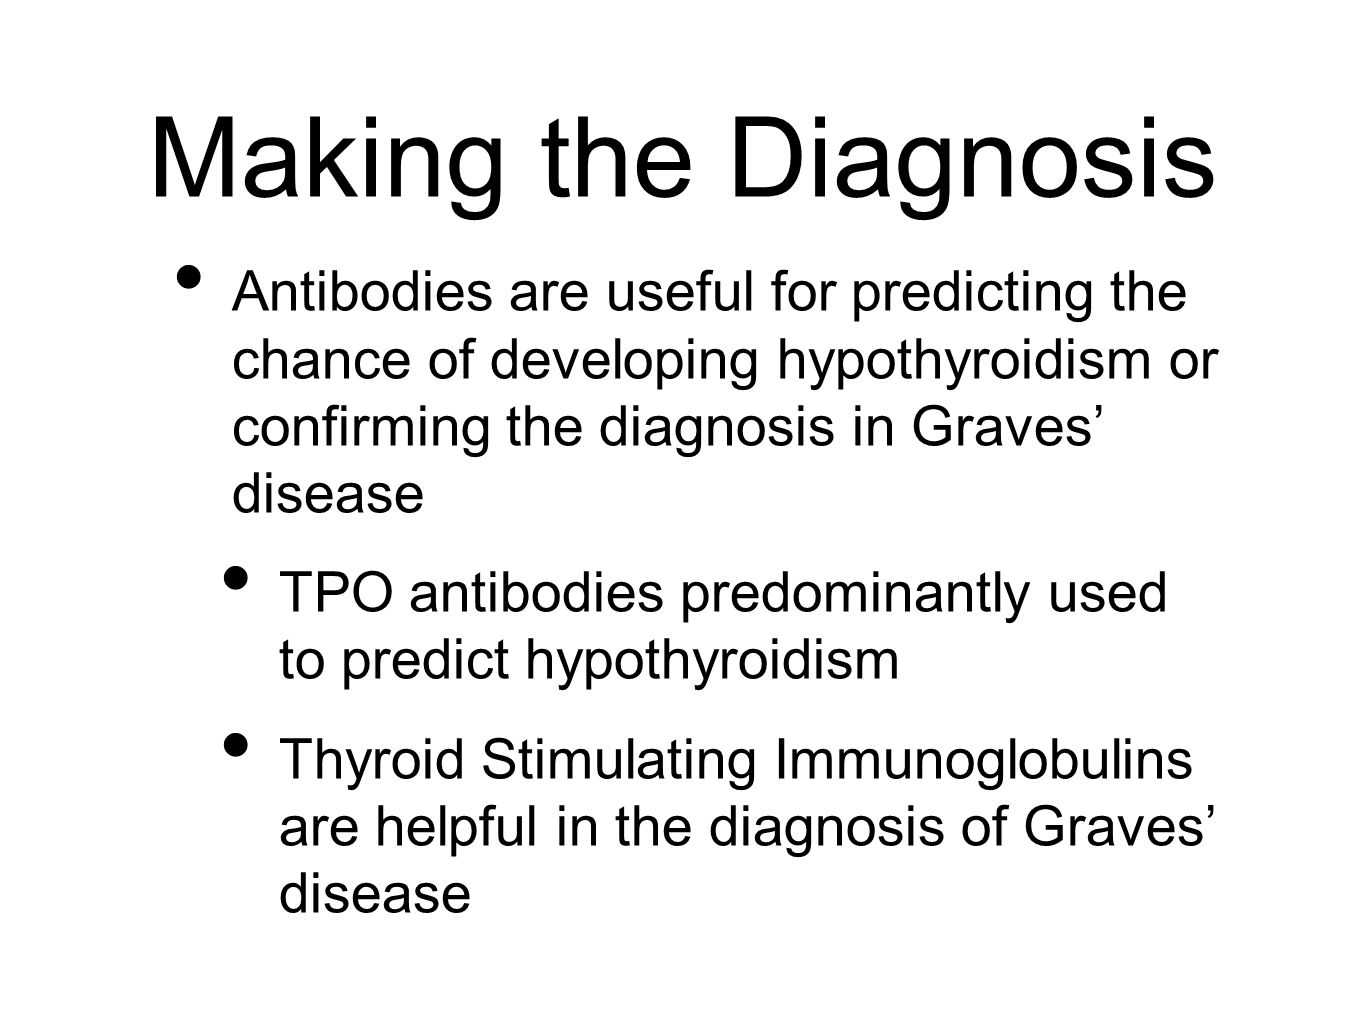 Making the Diagnosis Antibodies are useful for predicting the chance of developing hypothyroidism or confirming the diagnosis in Graves' disease.